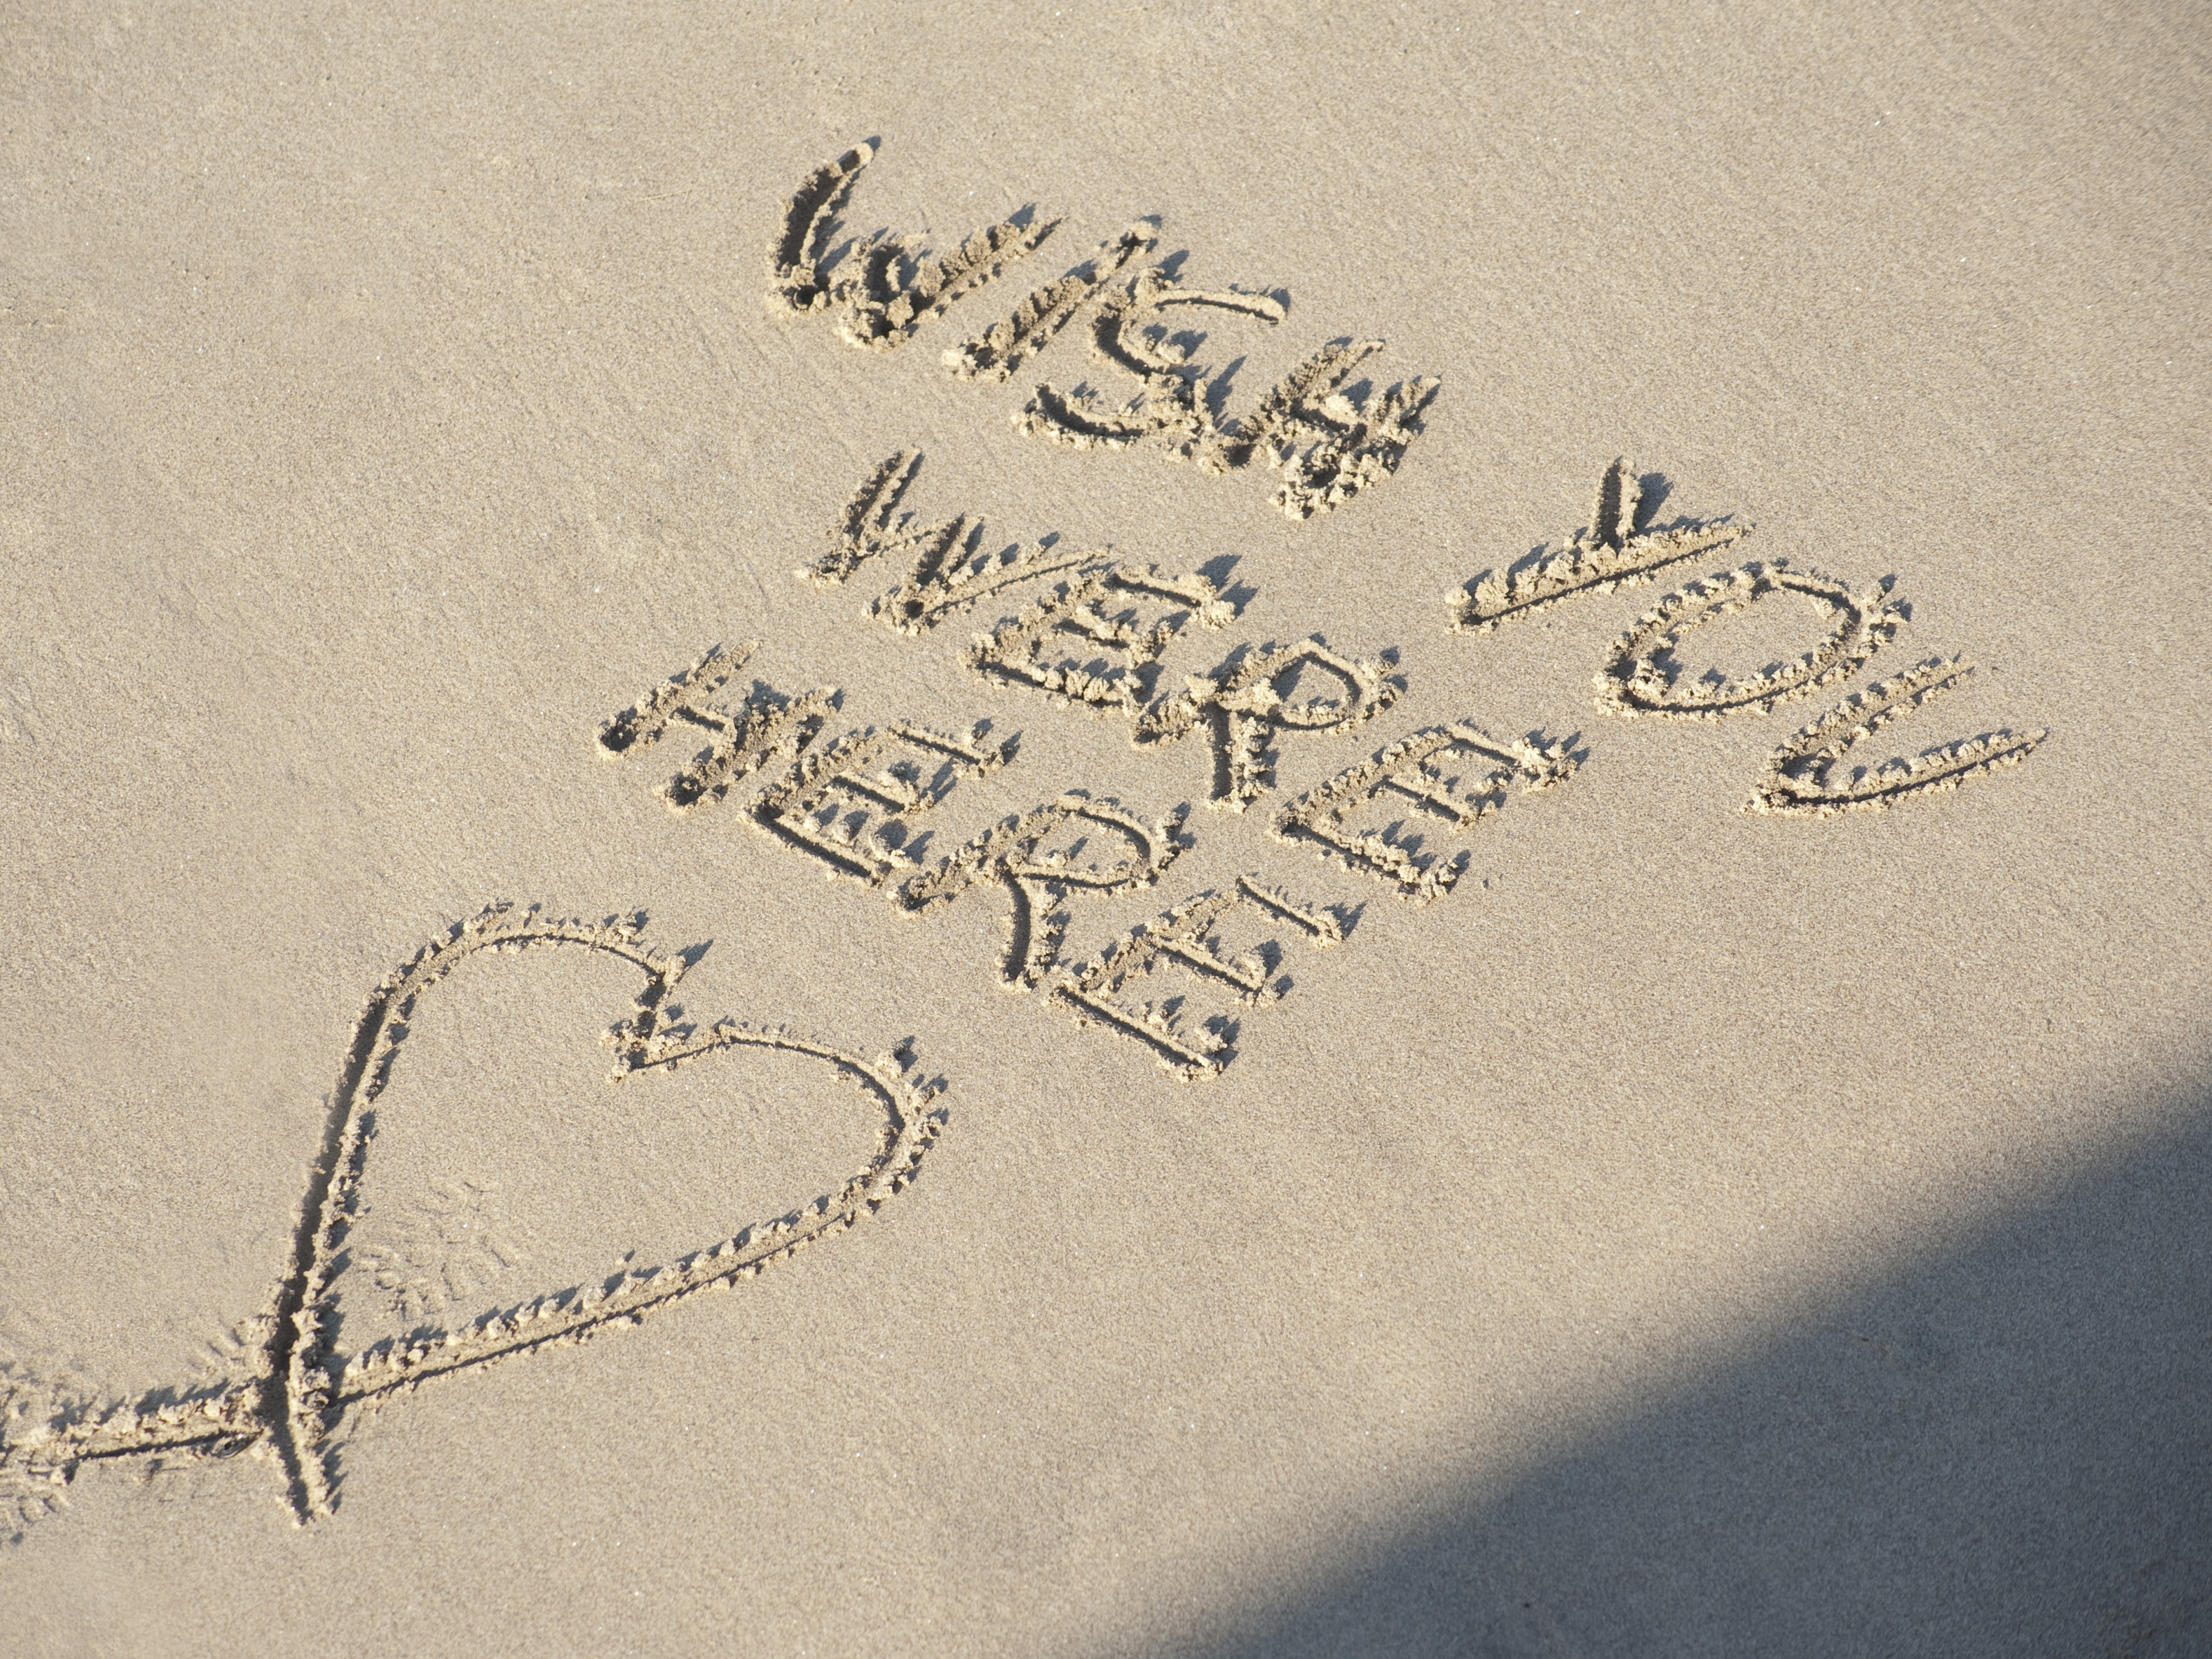 Wish You Were Here Quotes Brilliant Wish You Were Here On Beach Sand4235  Stockarch Free Stock Photos